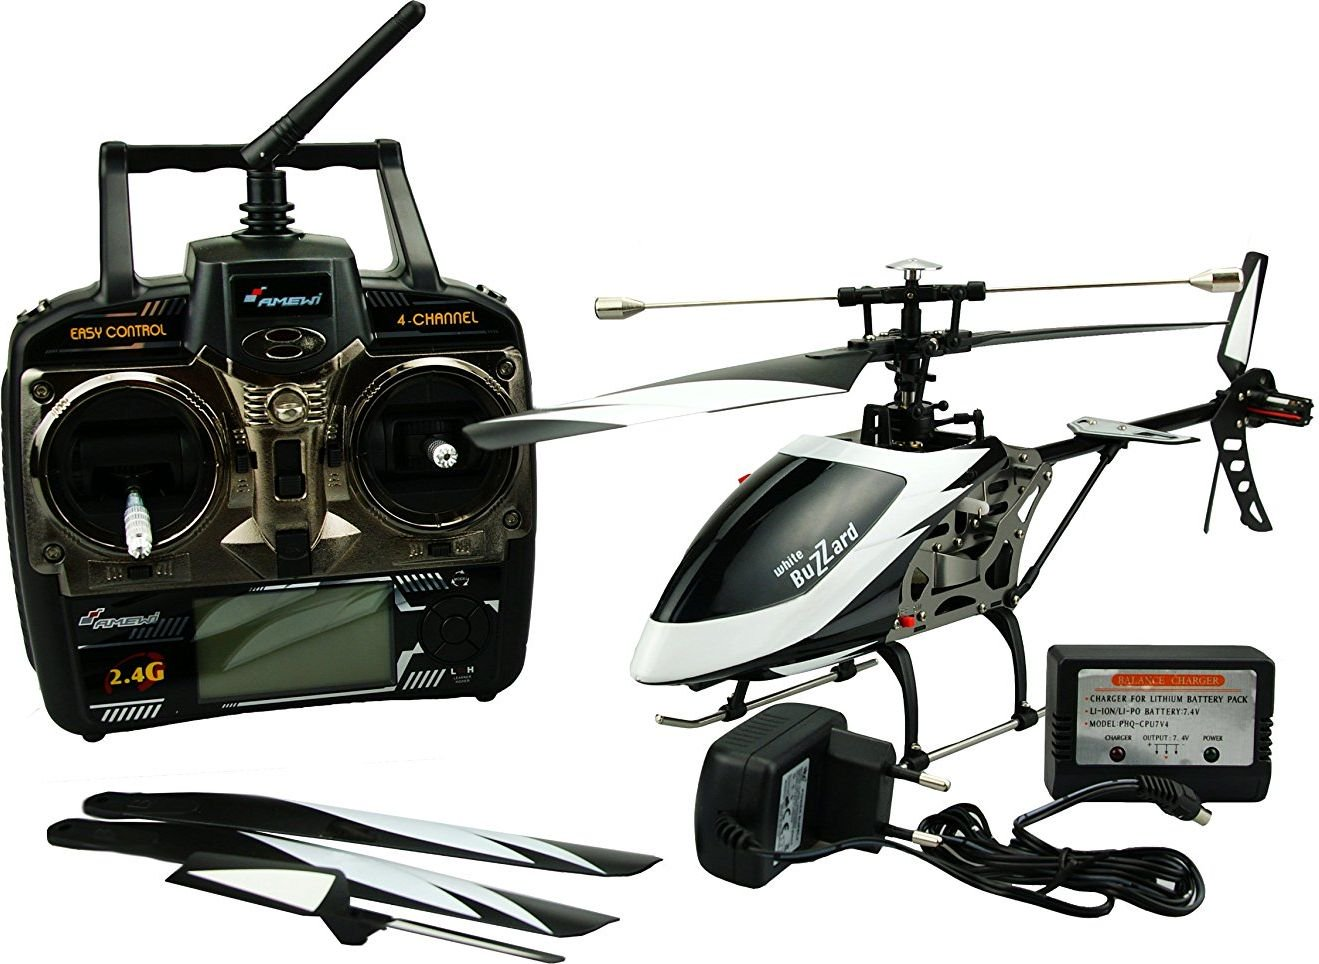 AMEWI Helikopter RC z pilotem LCD (25137) 25137